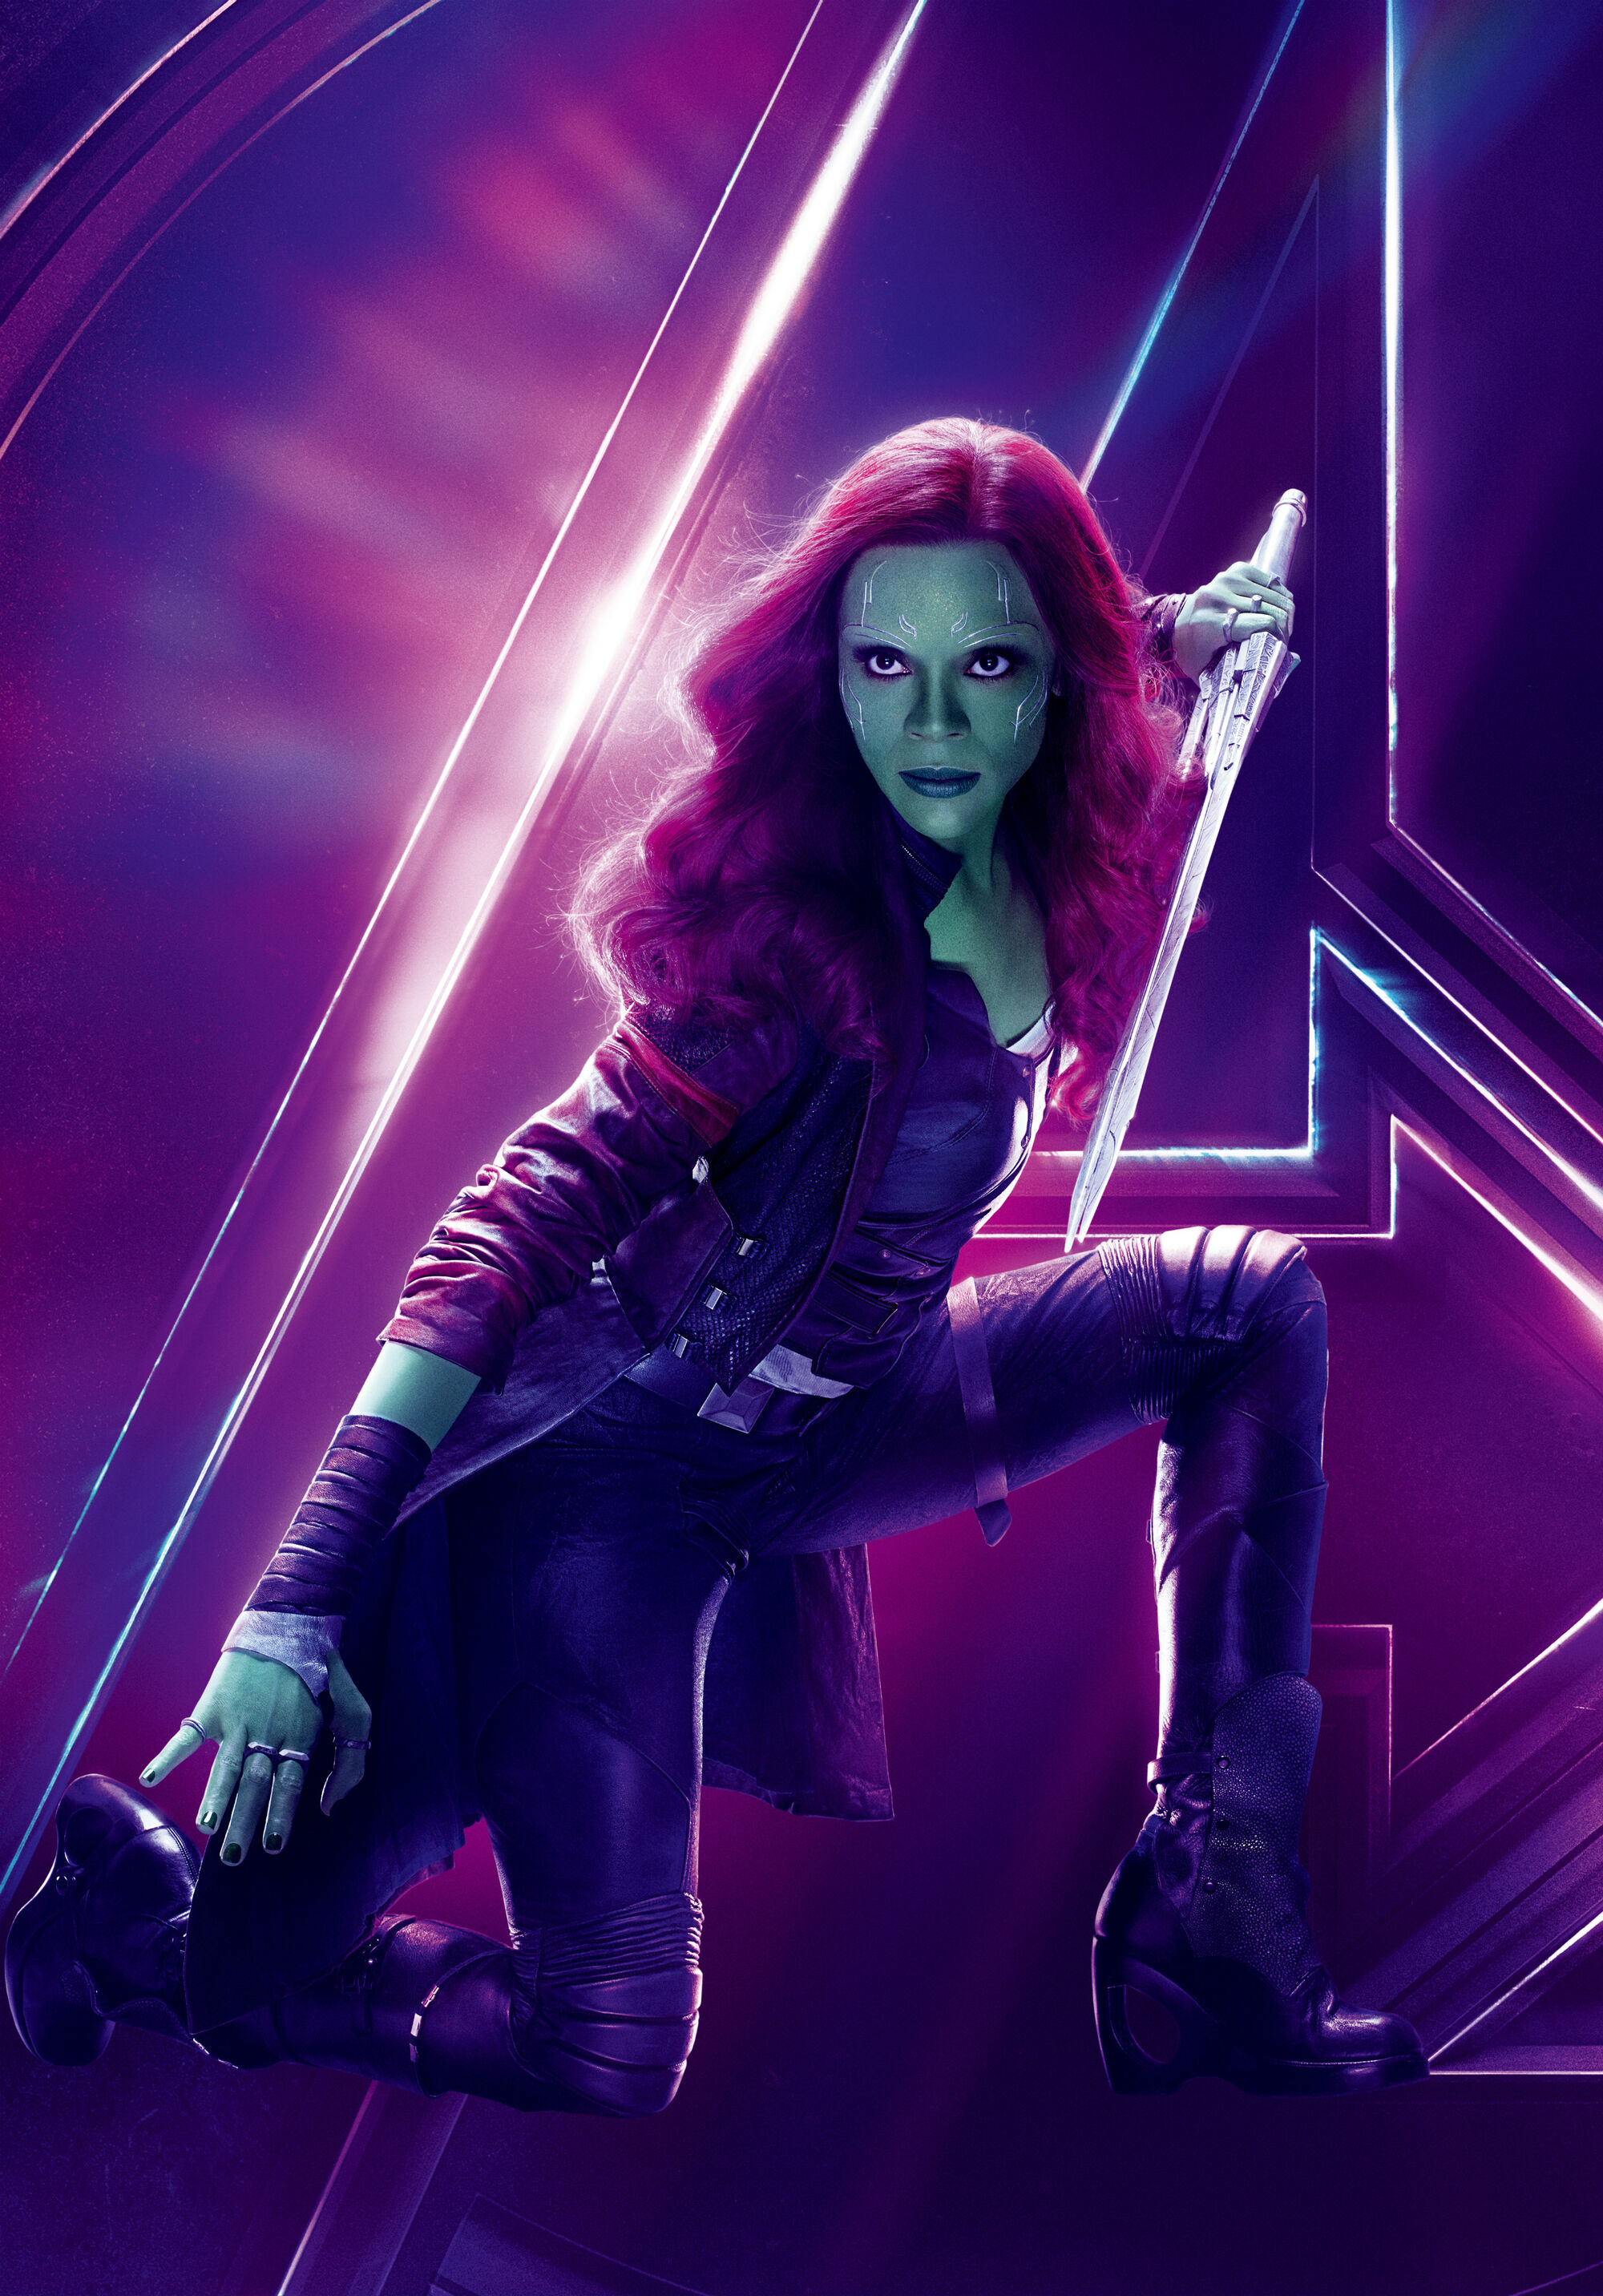 Gamora | Marvel Cinematic Universe Wiki | FANDOM powered by Wikia